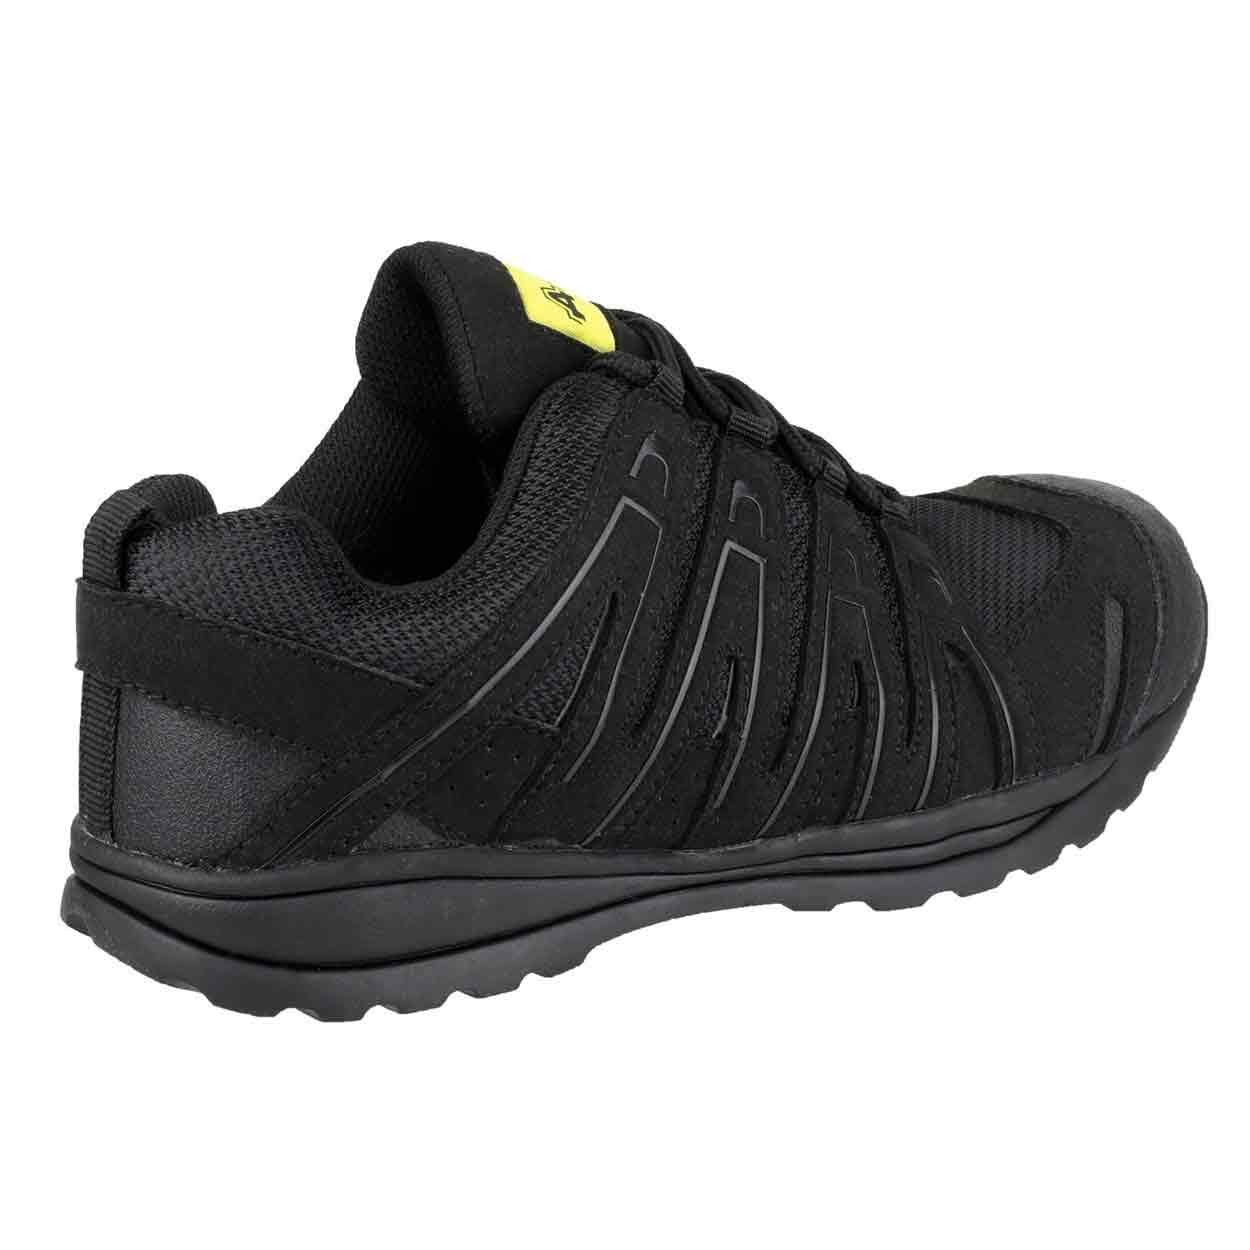 b9fc8e089 Amblers Safety FS40C Metal Free Safety Boot - Safety Shoes and Trainers -  Mens Safety Boots & Shoes - Safety Footwear - Best Workwear